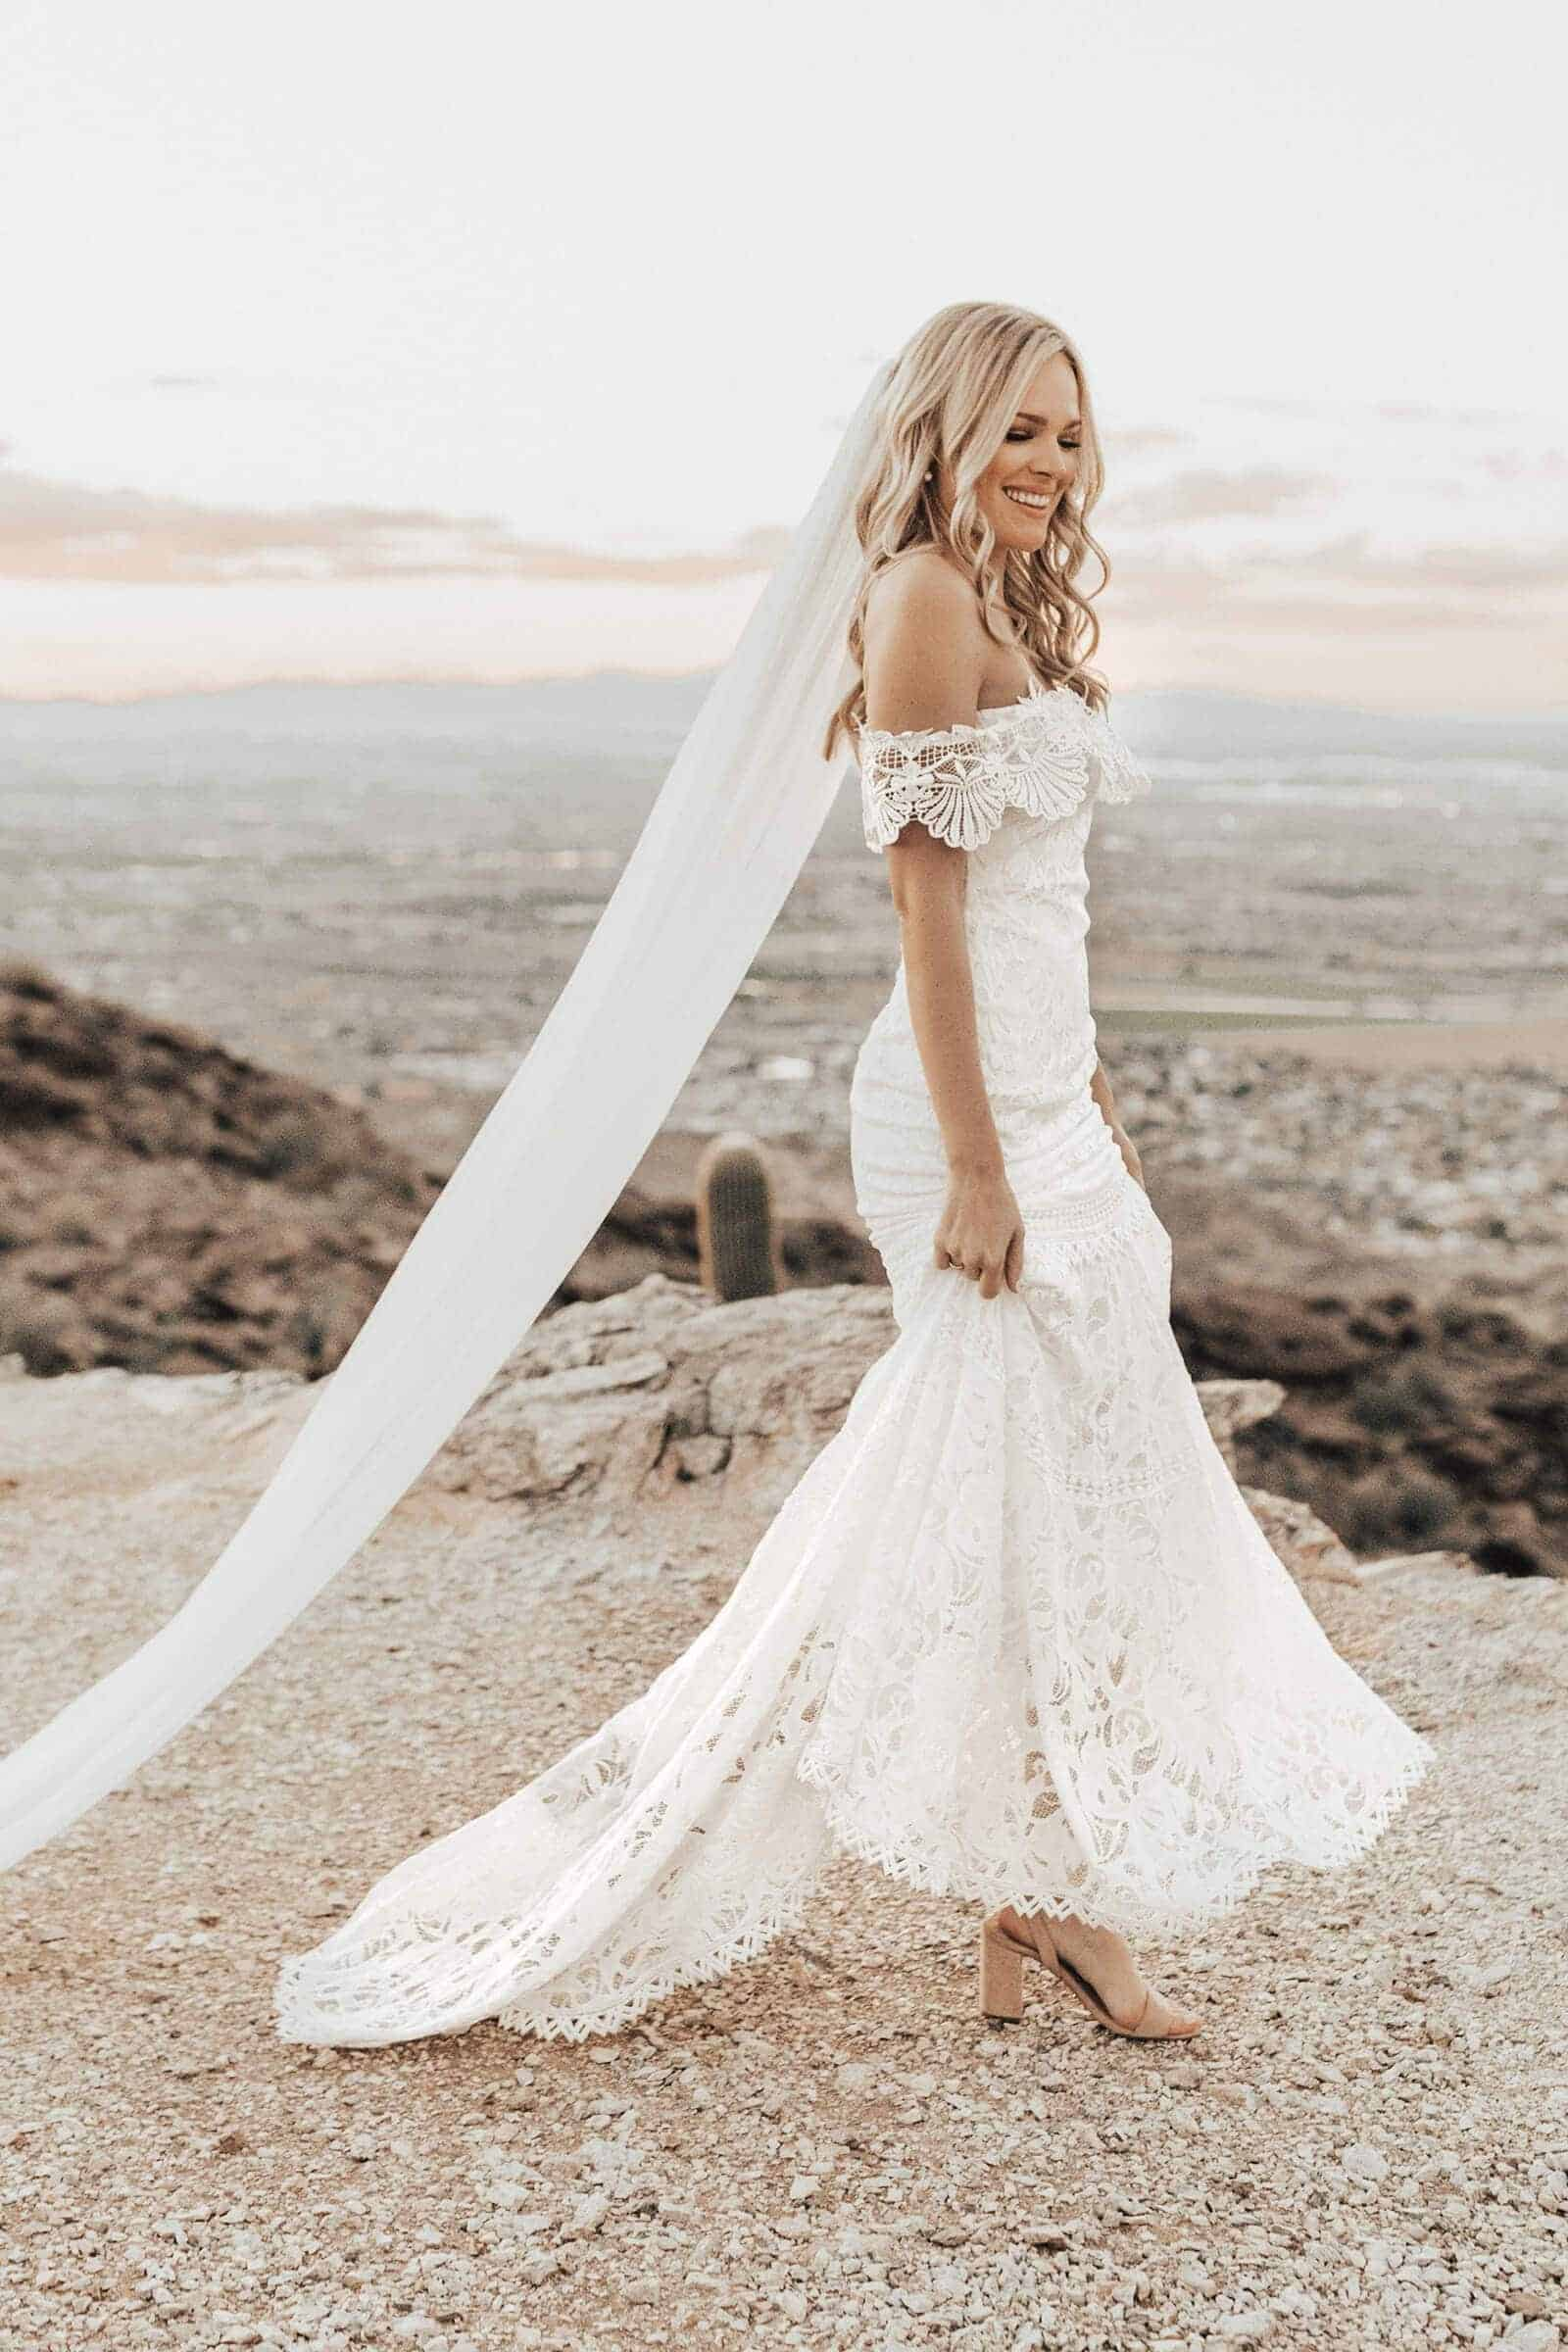 Elopement Wedding Dress Casual Simple Lace Embroided Off the Shoulder Dress Intimate Wedding Dress Romantic Grace Loves Lace Cien 3